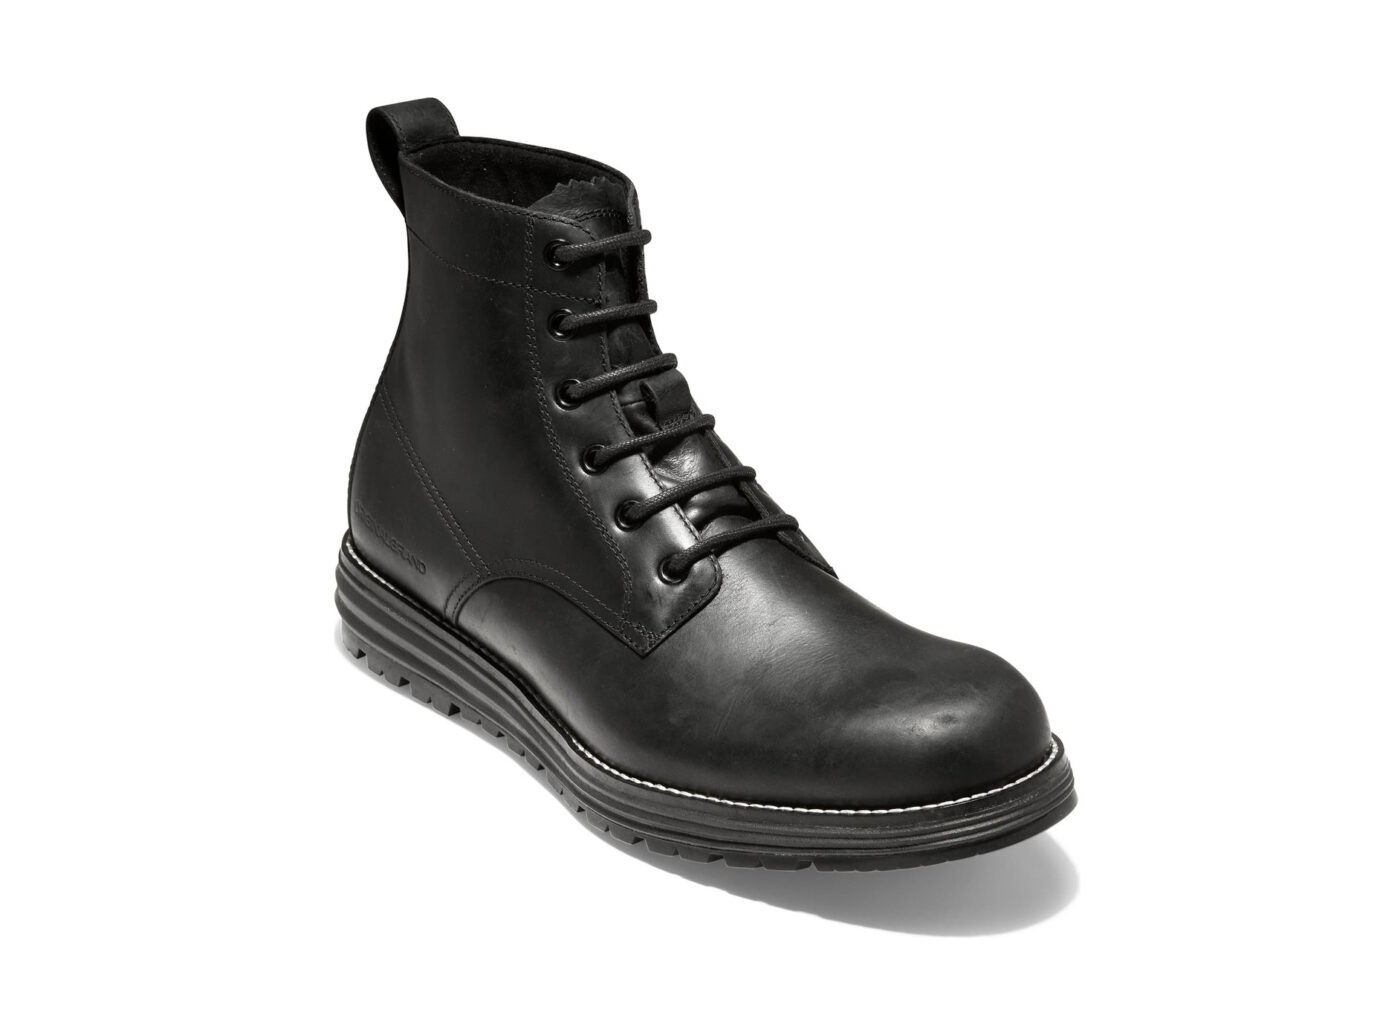 Cole Hann Original Grand Waterproof Plain Toe boots